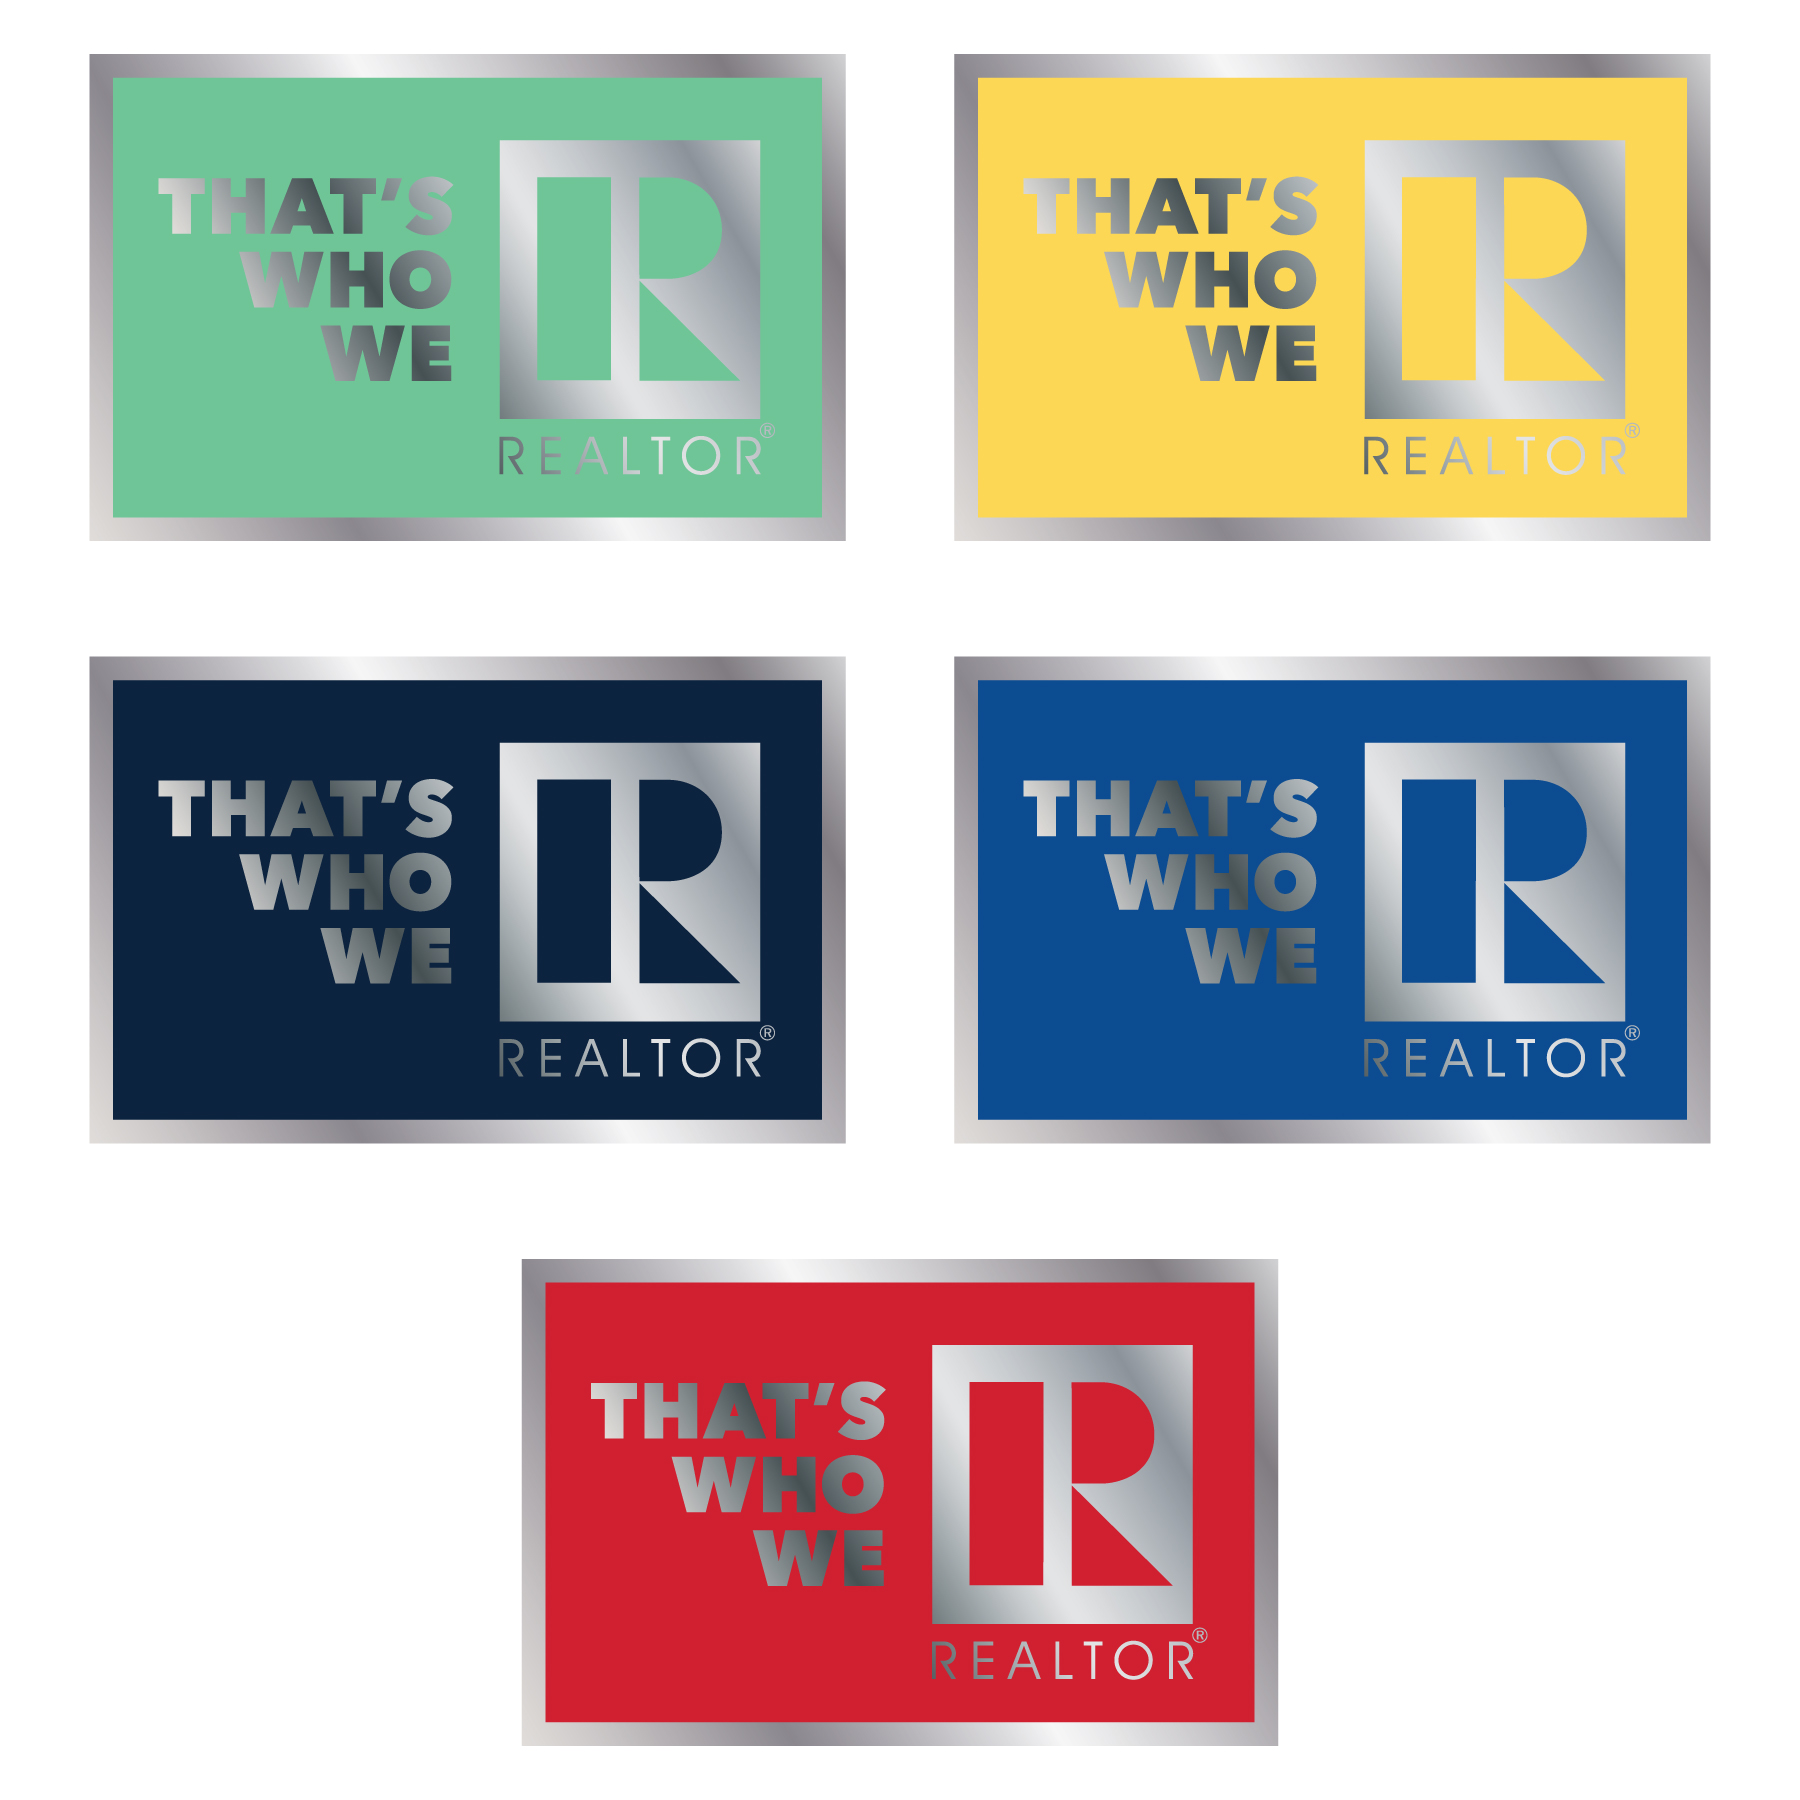 """That's Who We R"" Lapel Pin twwr,ThatsWhoWeR,That's,TWWR,ThatWho,That'sWho,Pins,Lapels,Rs,Magnets"